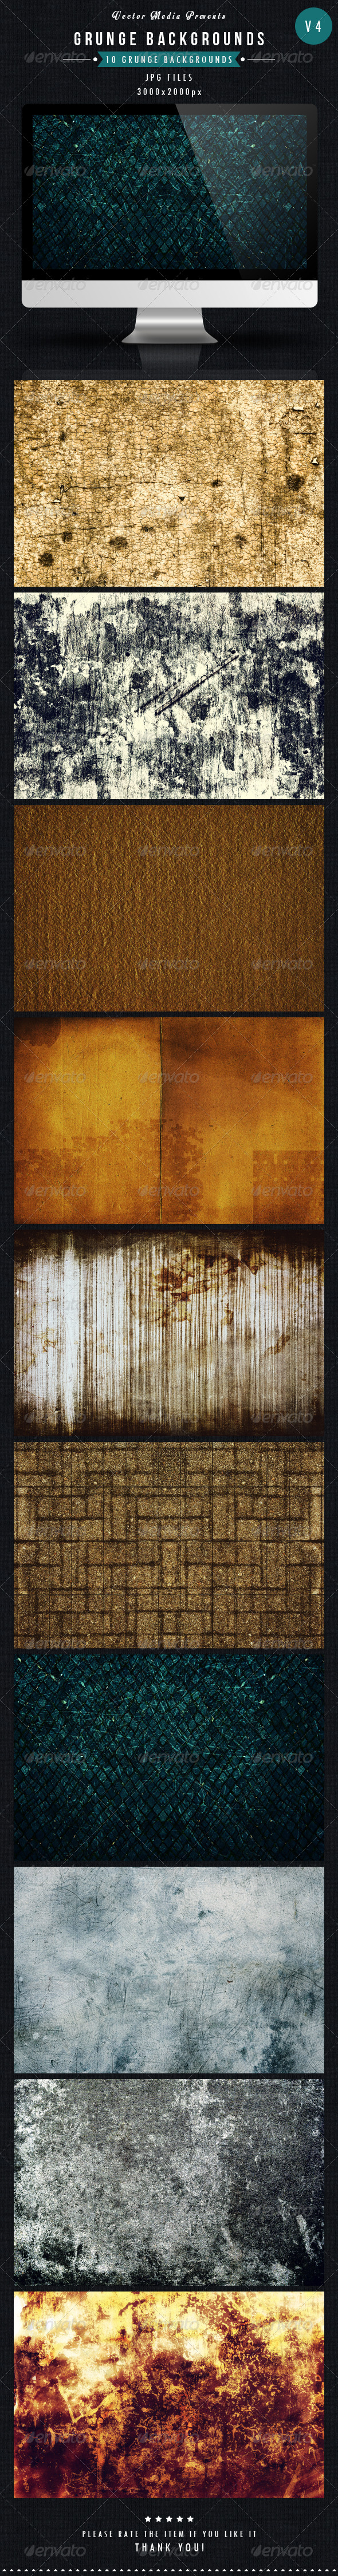 GraphicRiver Grunge Backgrounds Vol 4 5542084